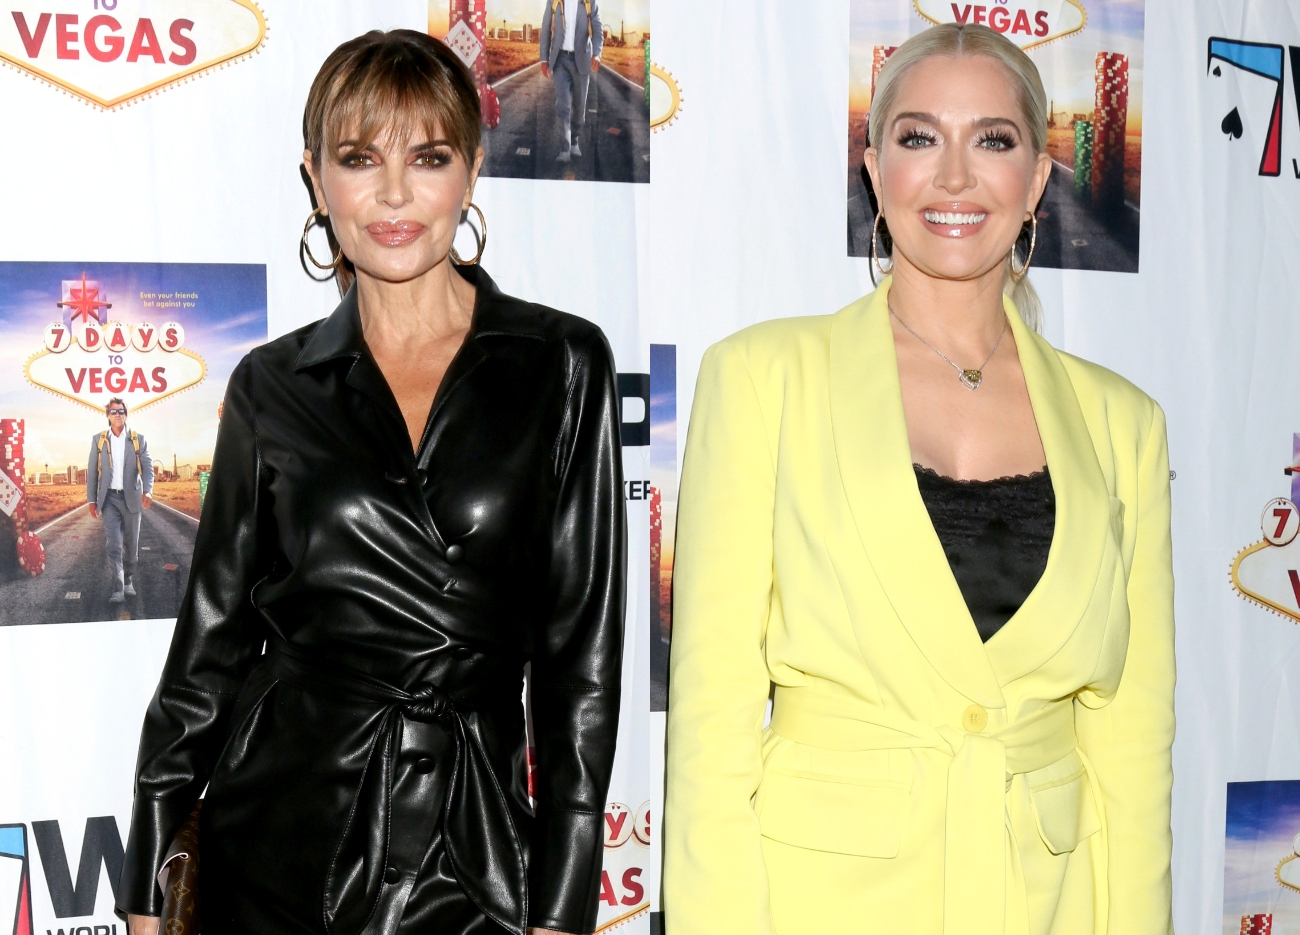 """RHOBH's Lisa Rinna on Why She Didn't Find Erika's Story About Tom """"Crazy,"""" What She'll Do If Erika Lied to Her, and How Kyle and Dorit """"Hurt"""" Her"""